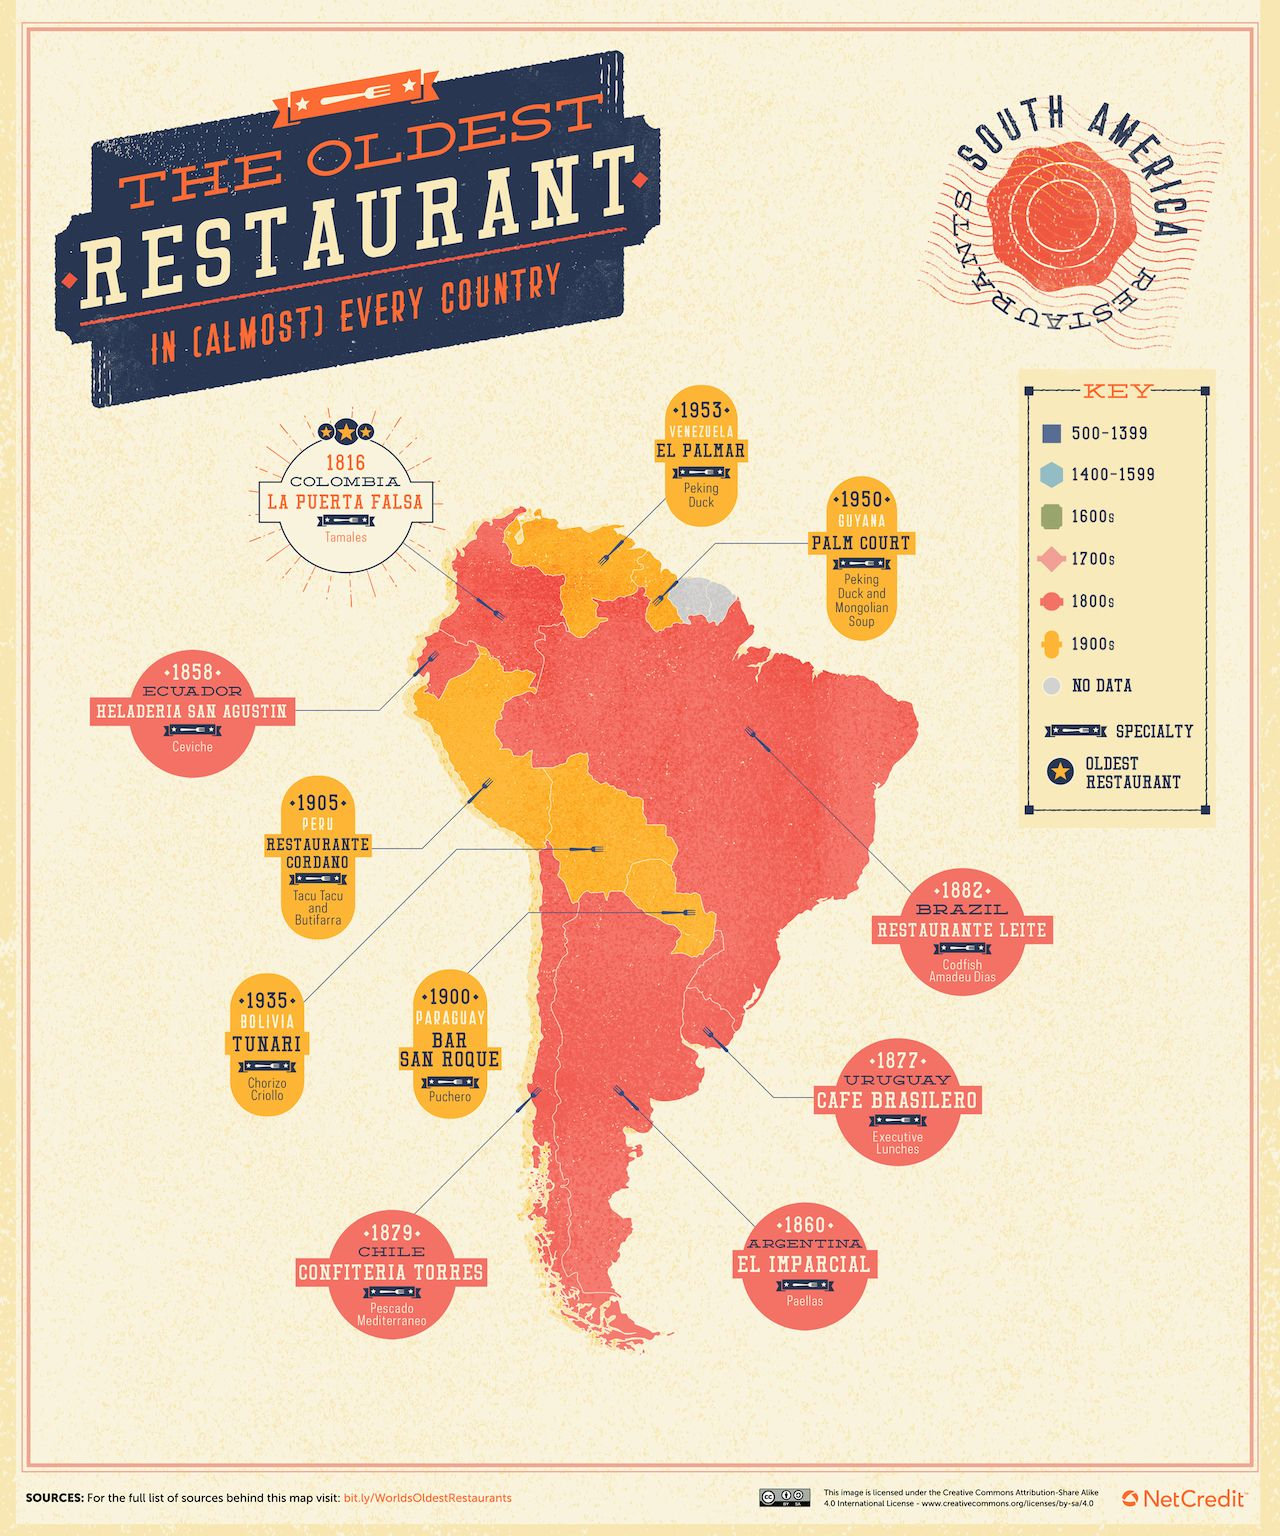 oldest-restaurant-south-america